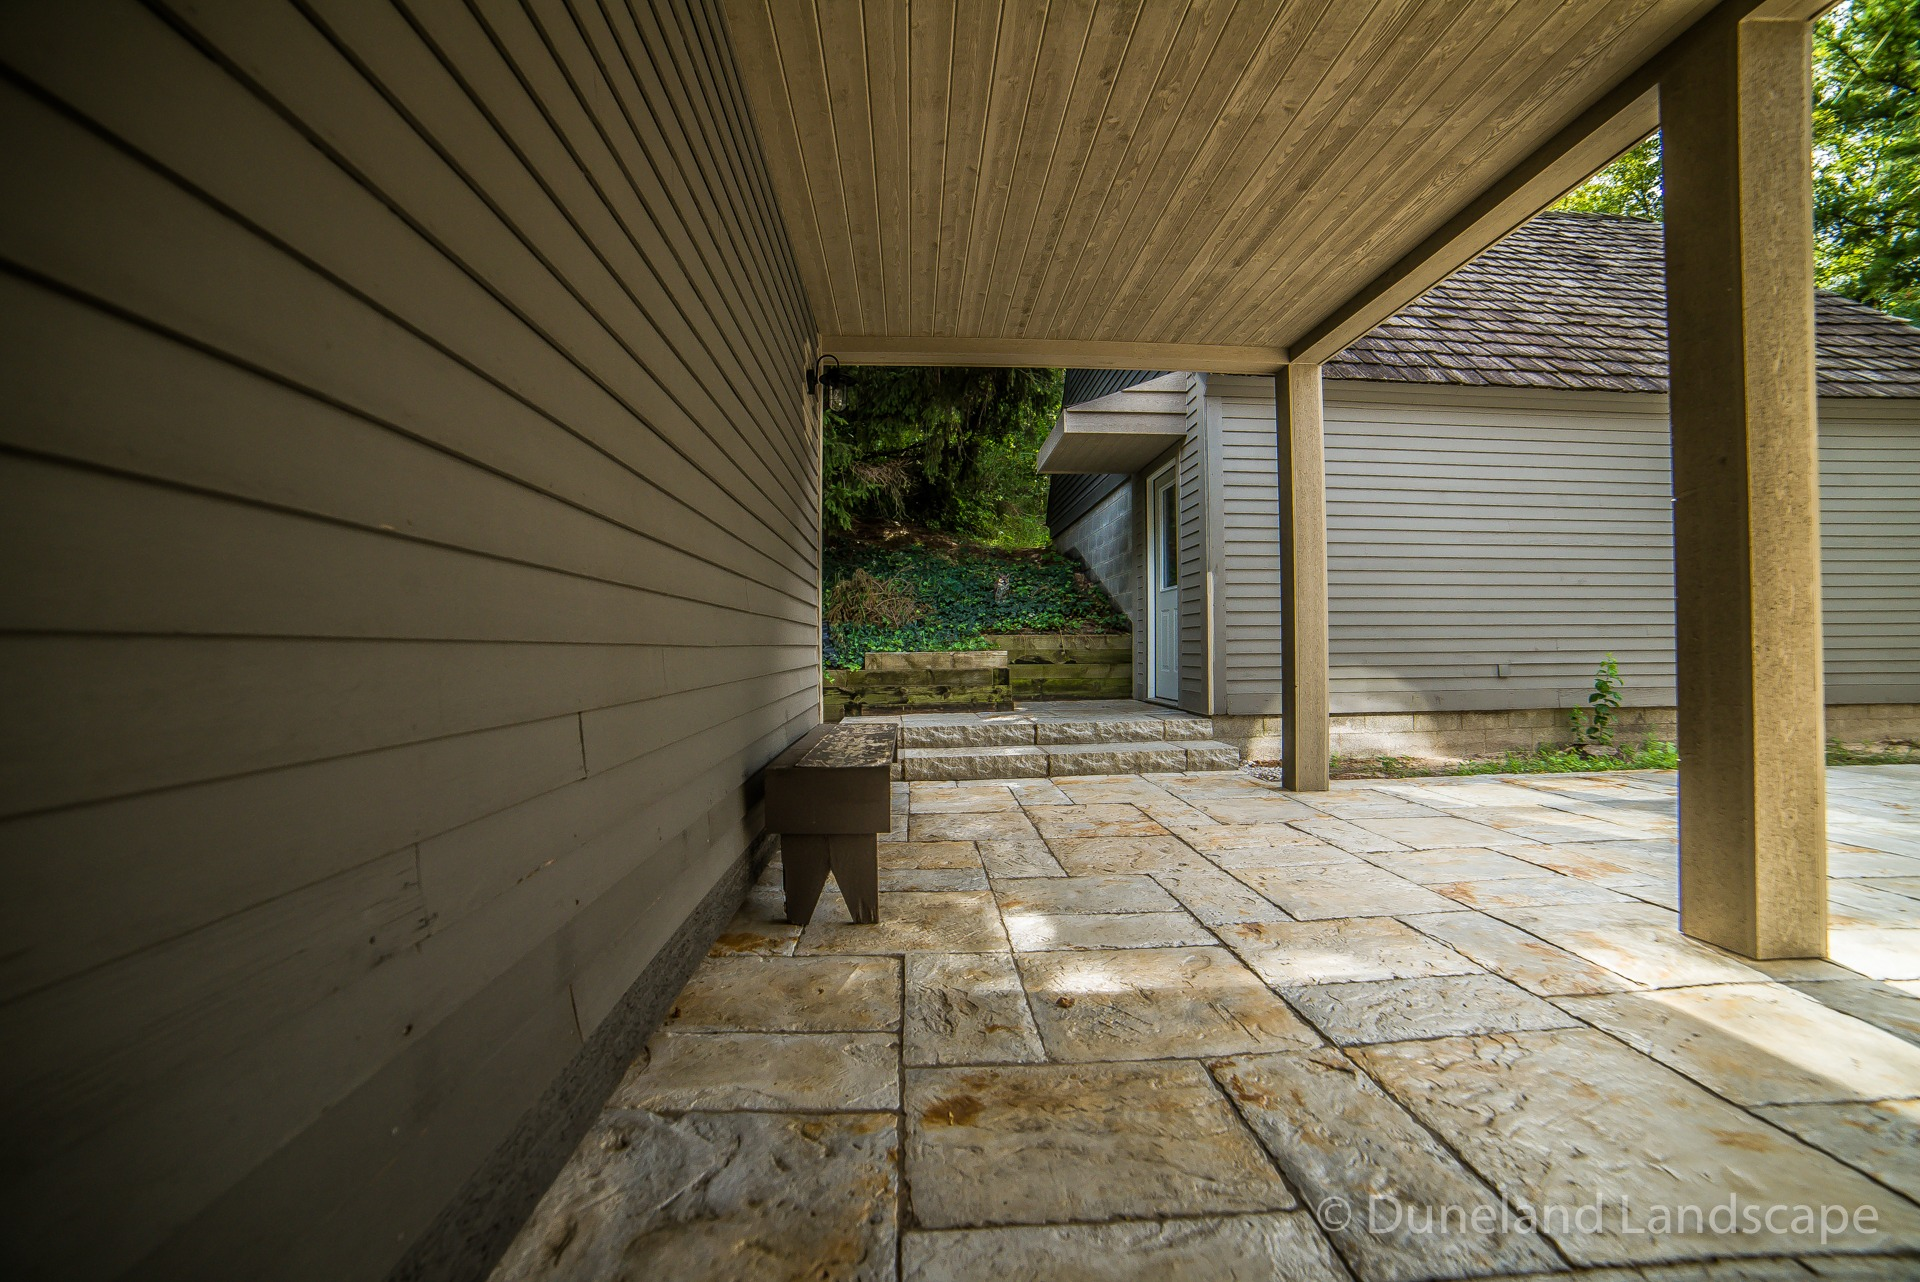 hardscaping materials for home in the woods